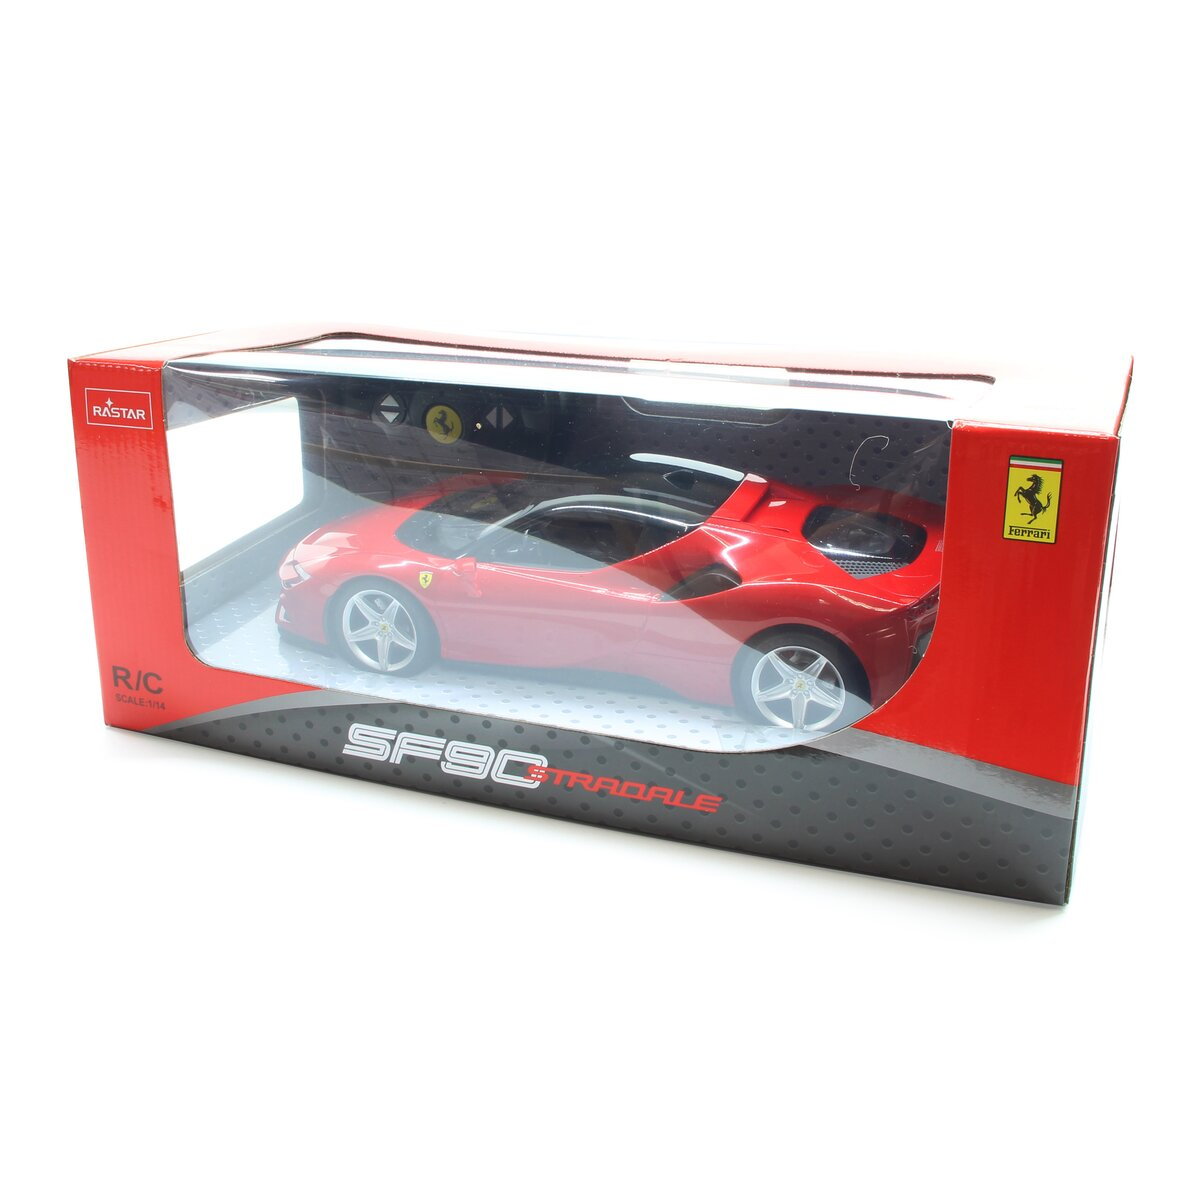 Jamara Ferrari SF90 Stradale 1:14 red 2,4GHz